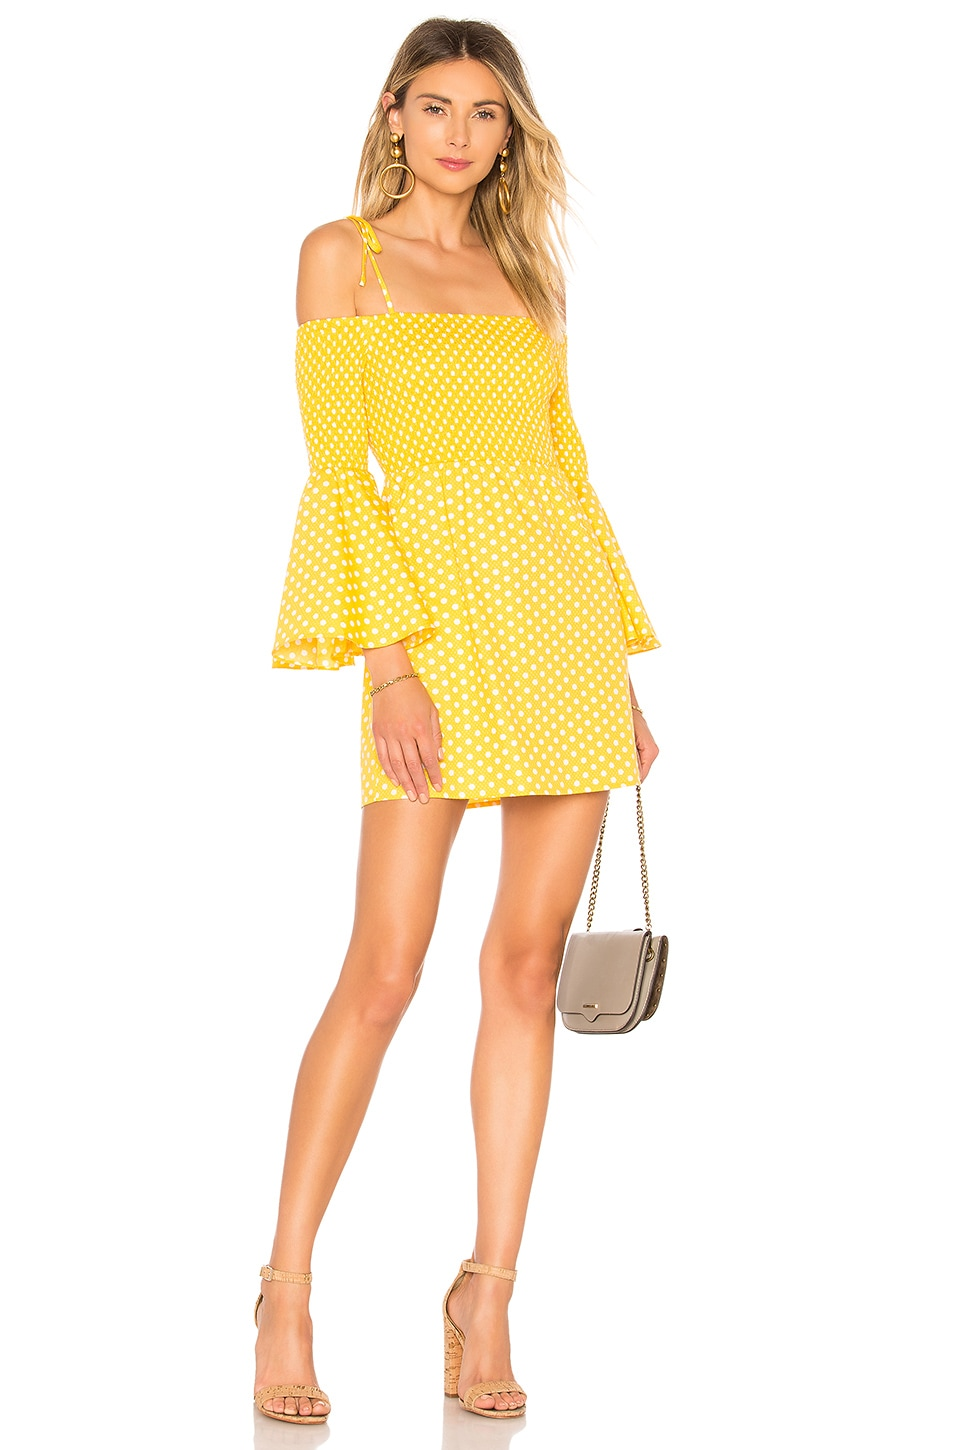 Tularosa The Social Dress in Pineapple